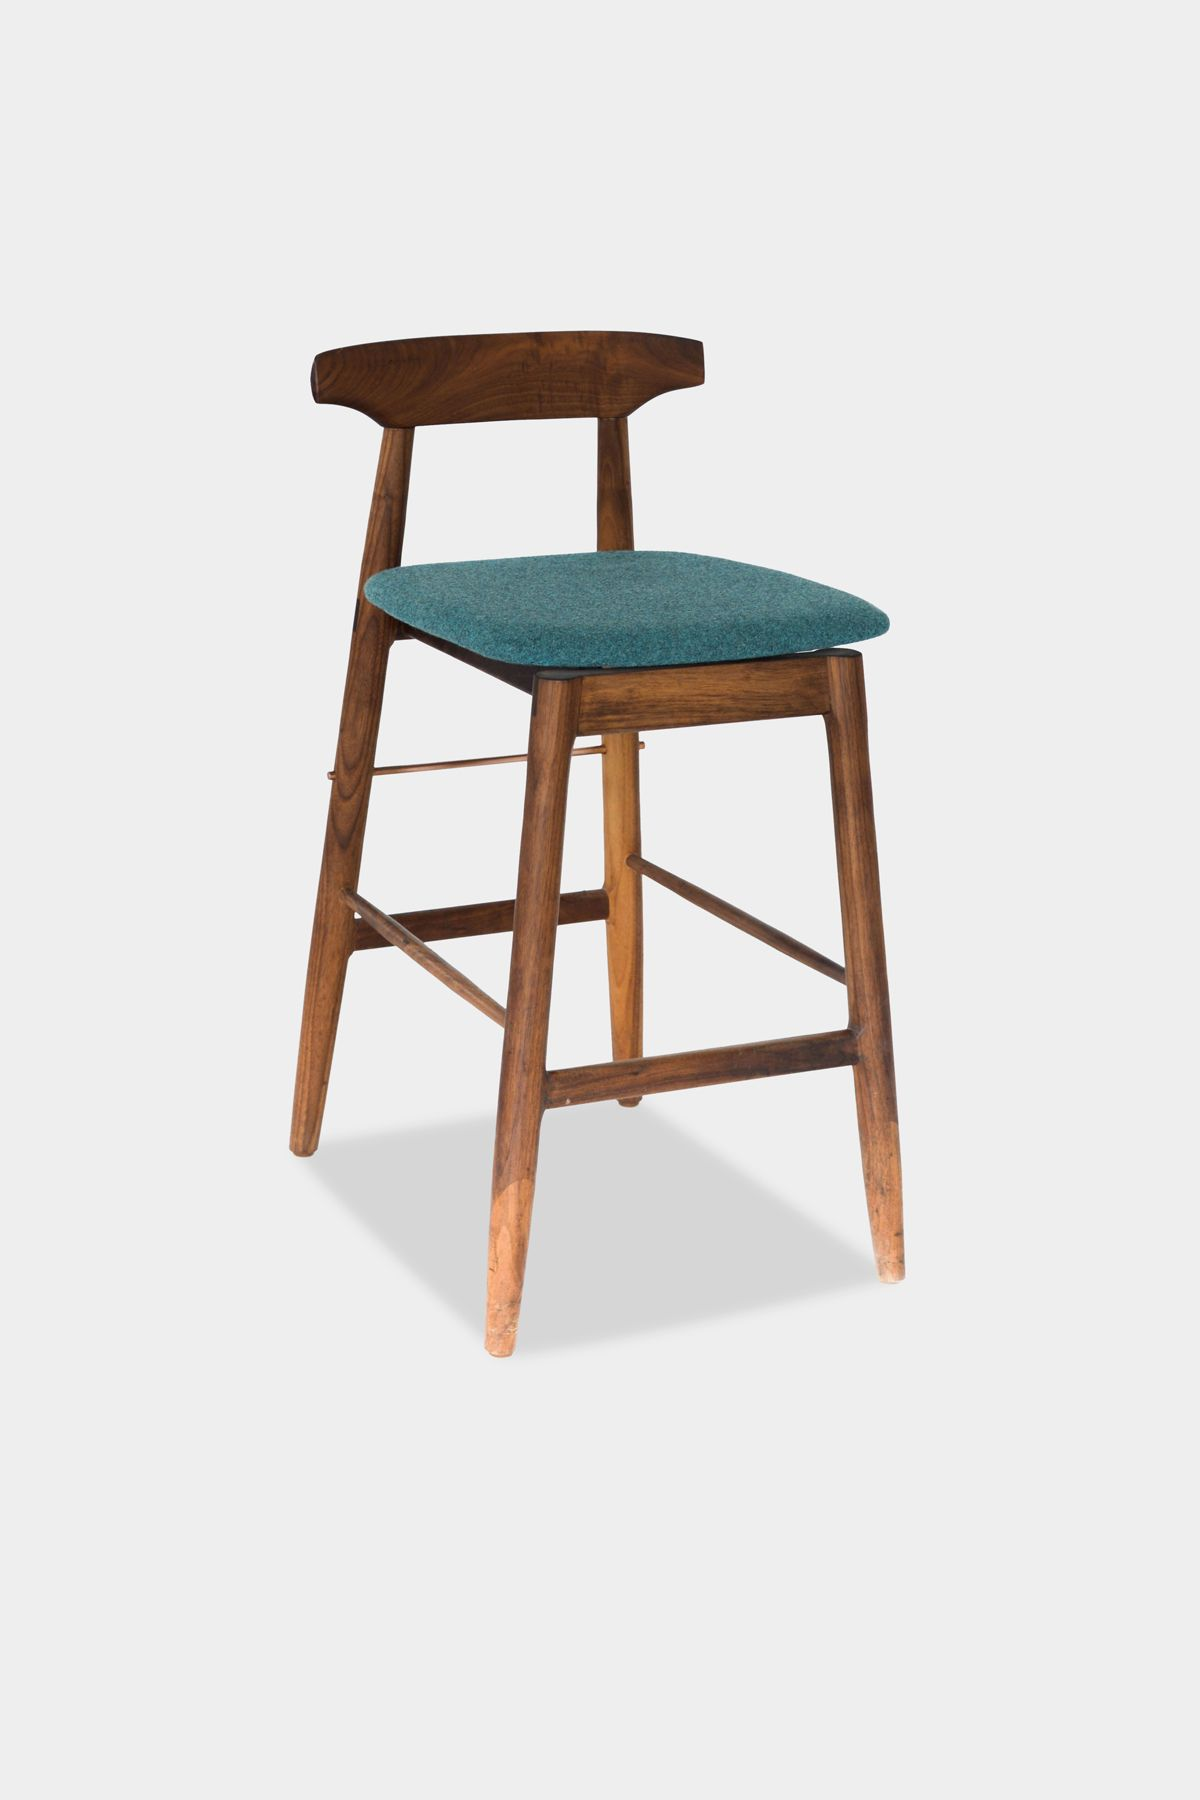 Wood High Stool High Stool Ashley Furniture Chairs Stool